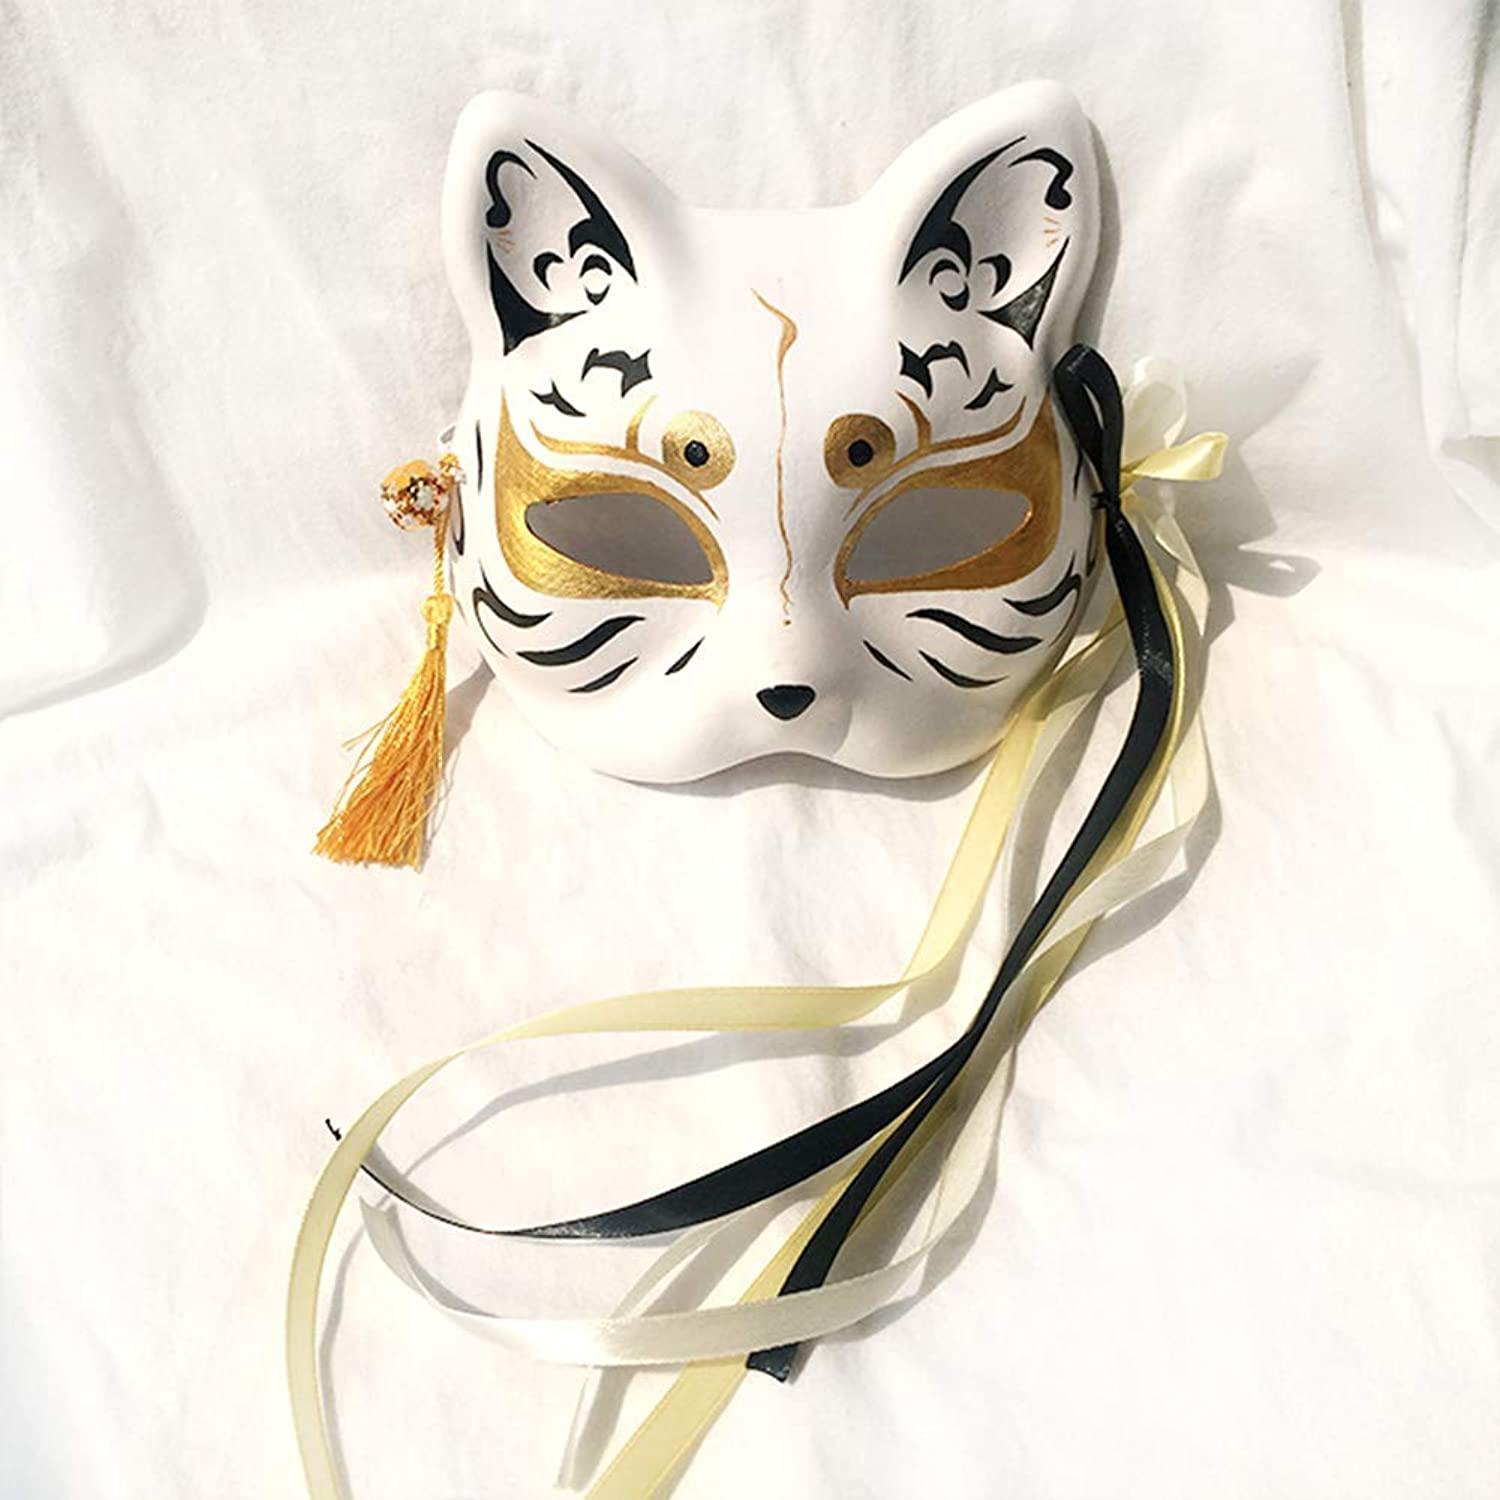 Zicue Humgoldus Mask Masquerade Prom Mask Half Face Fox Hand Painted Mask Paper Pulp Animal Mask for Masquerade Cosplay Party Prop,1 ( color   4 )